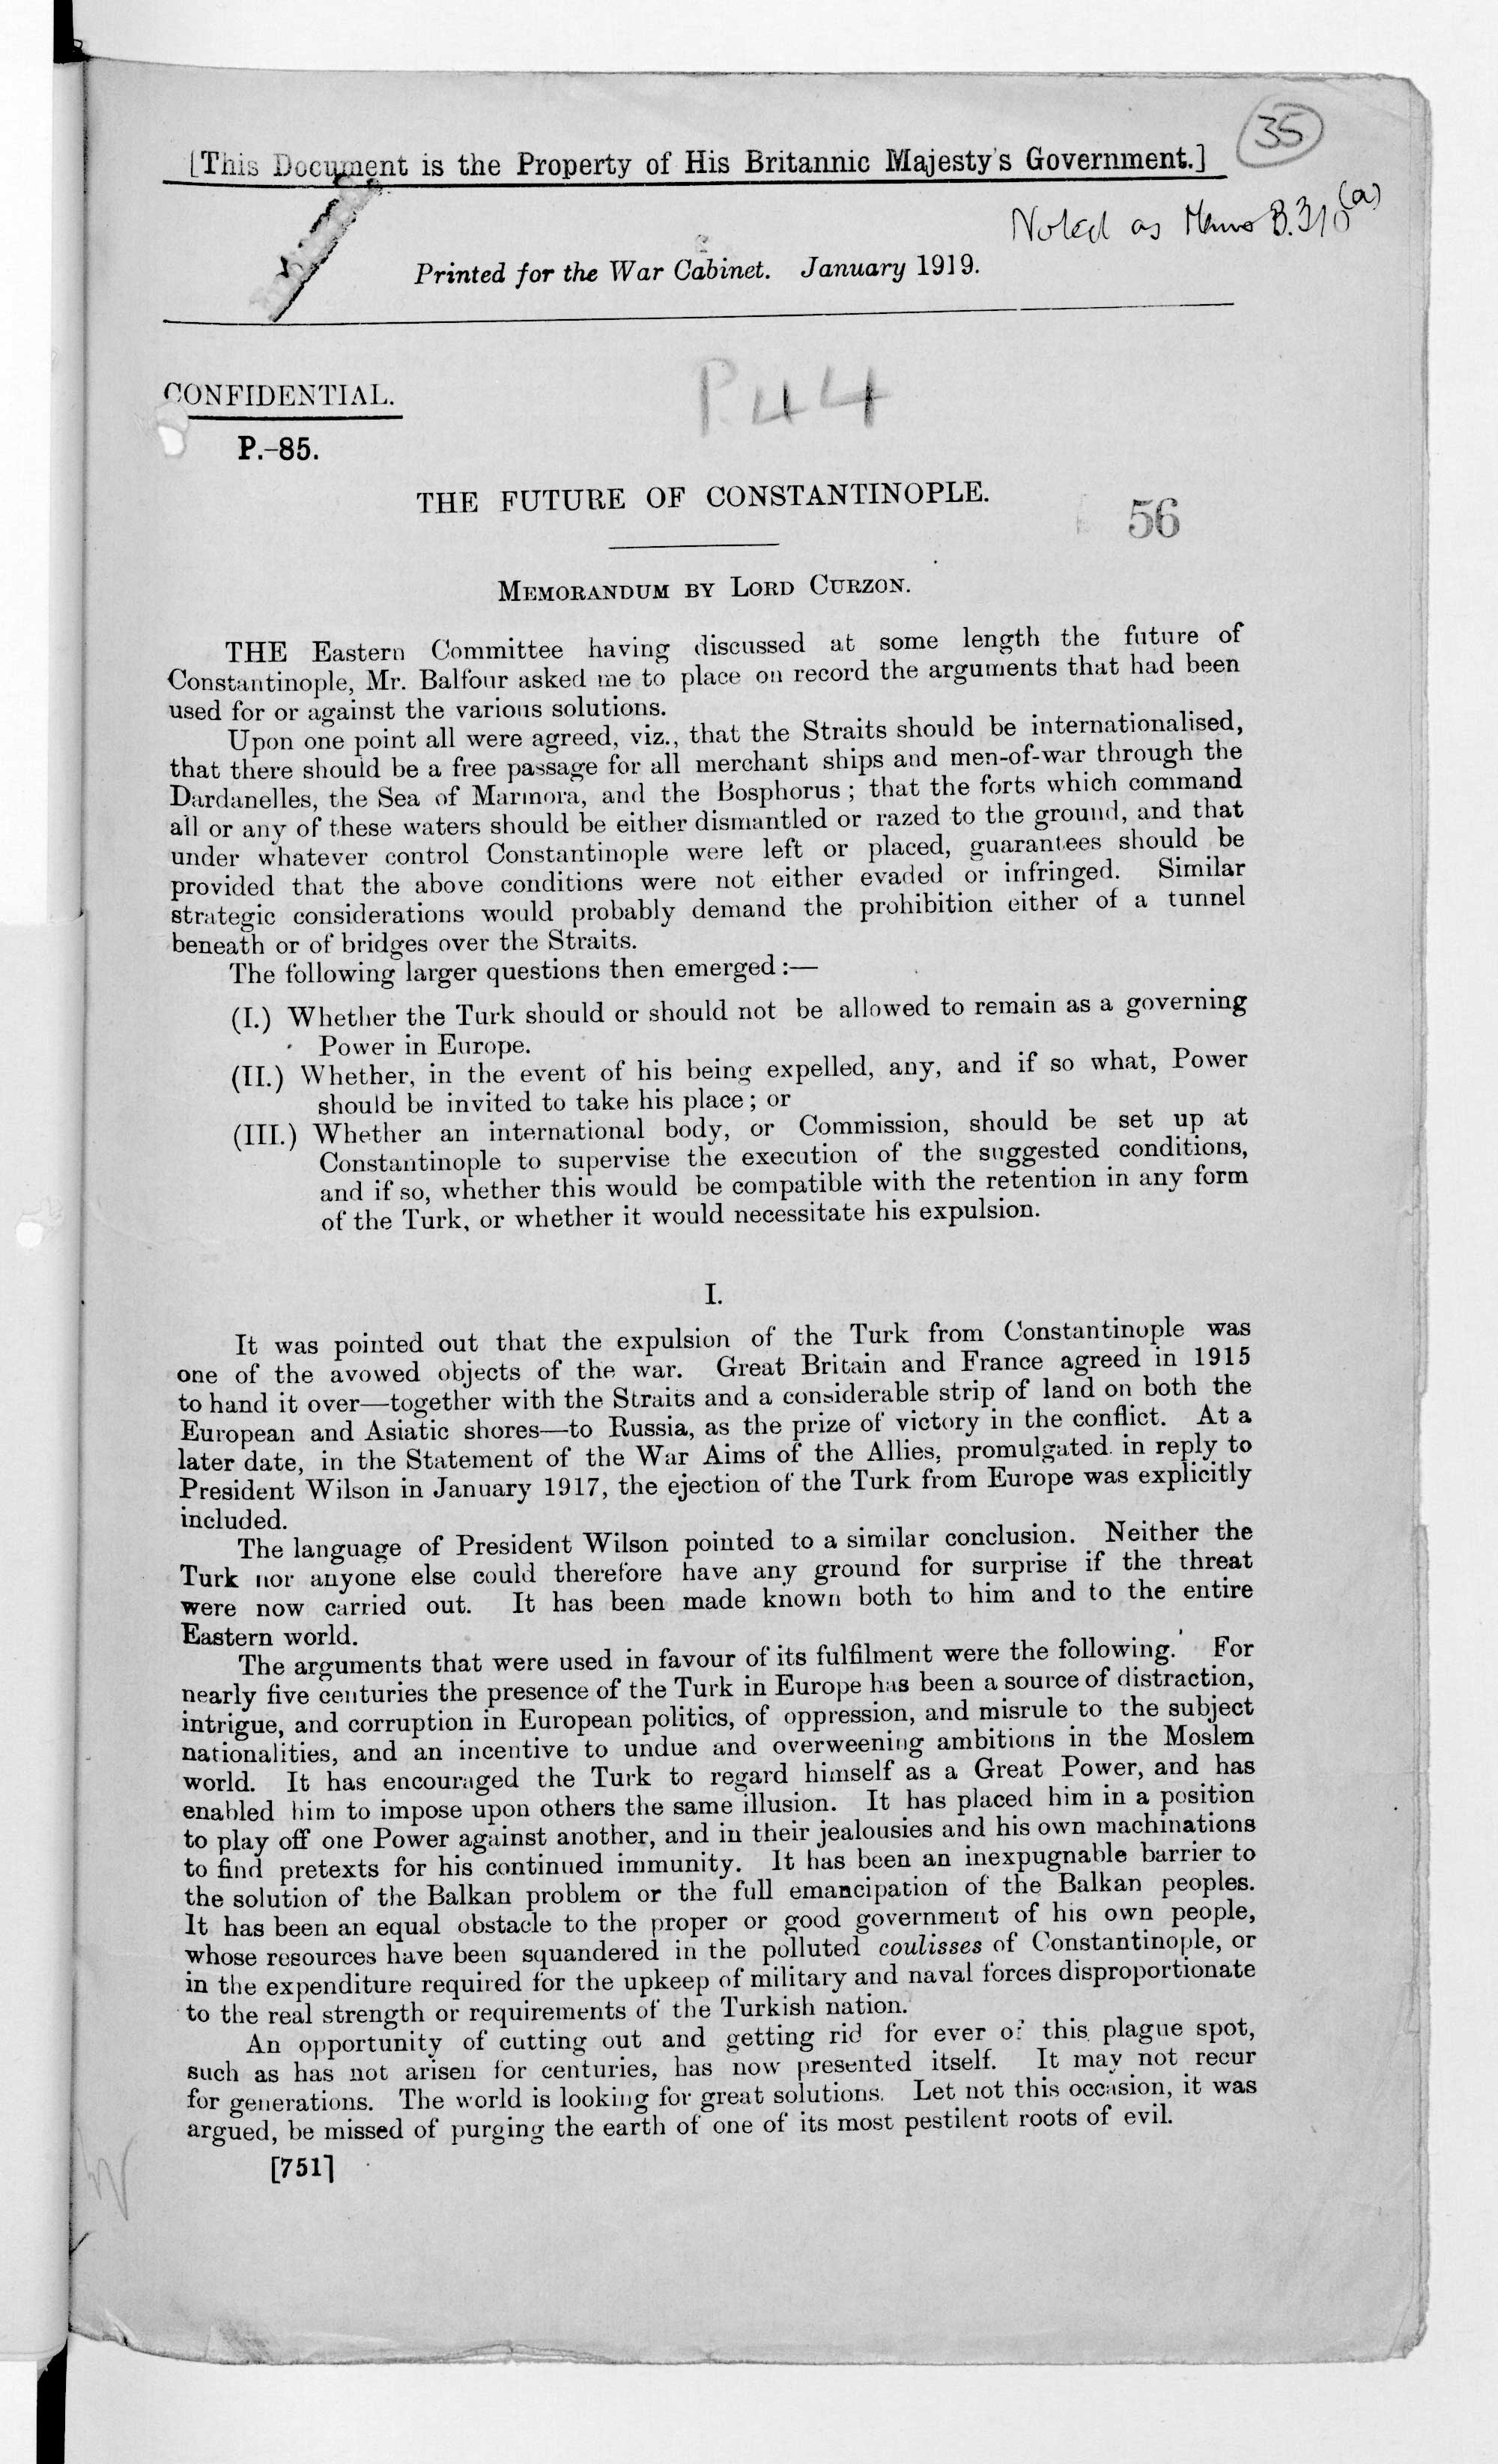 Memorandum by Lord Curzon, summarising the debates regarding the future of Constantinople (modern-day Istanbul). 2 January 1918.